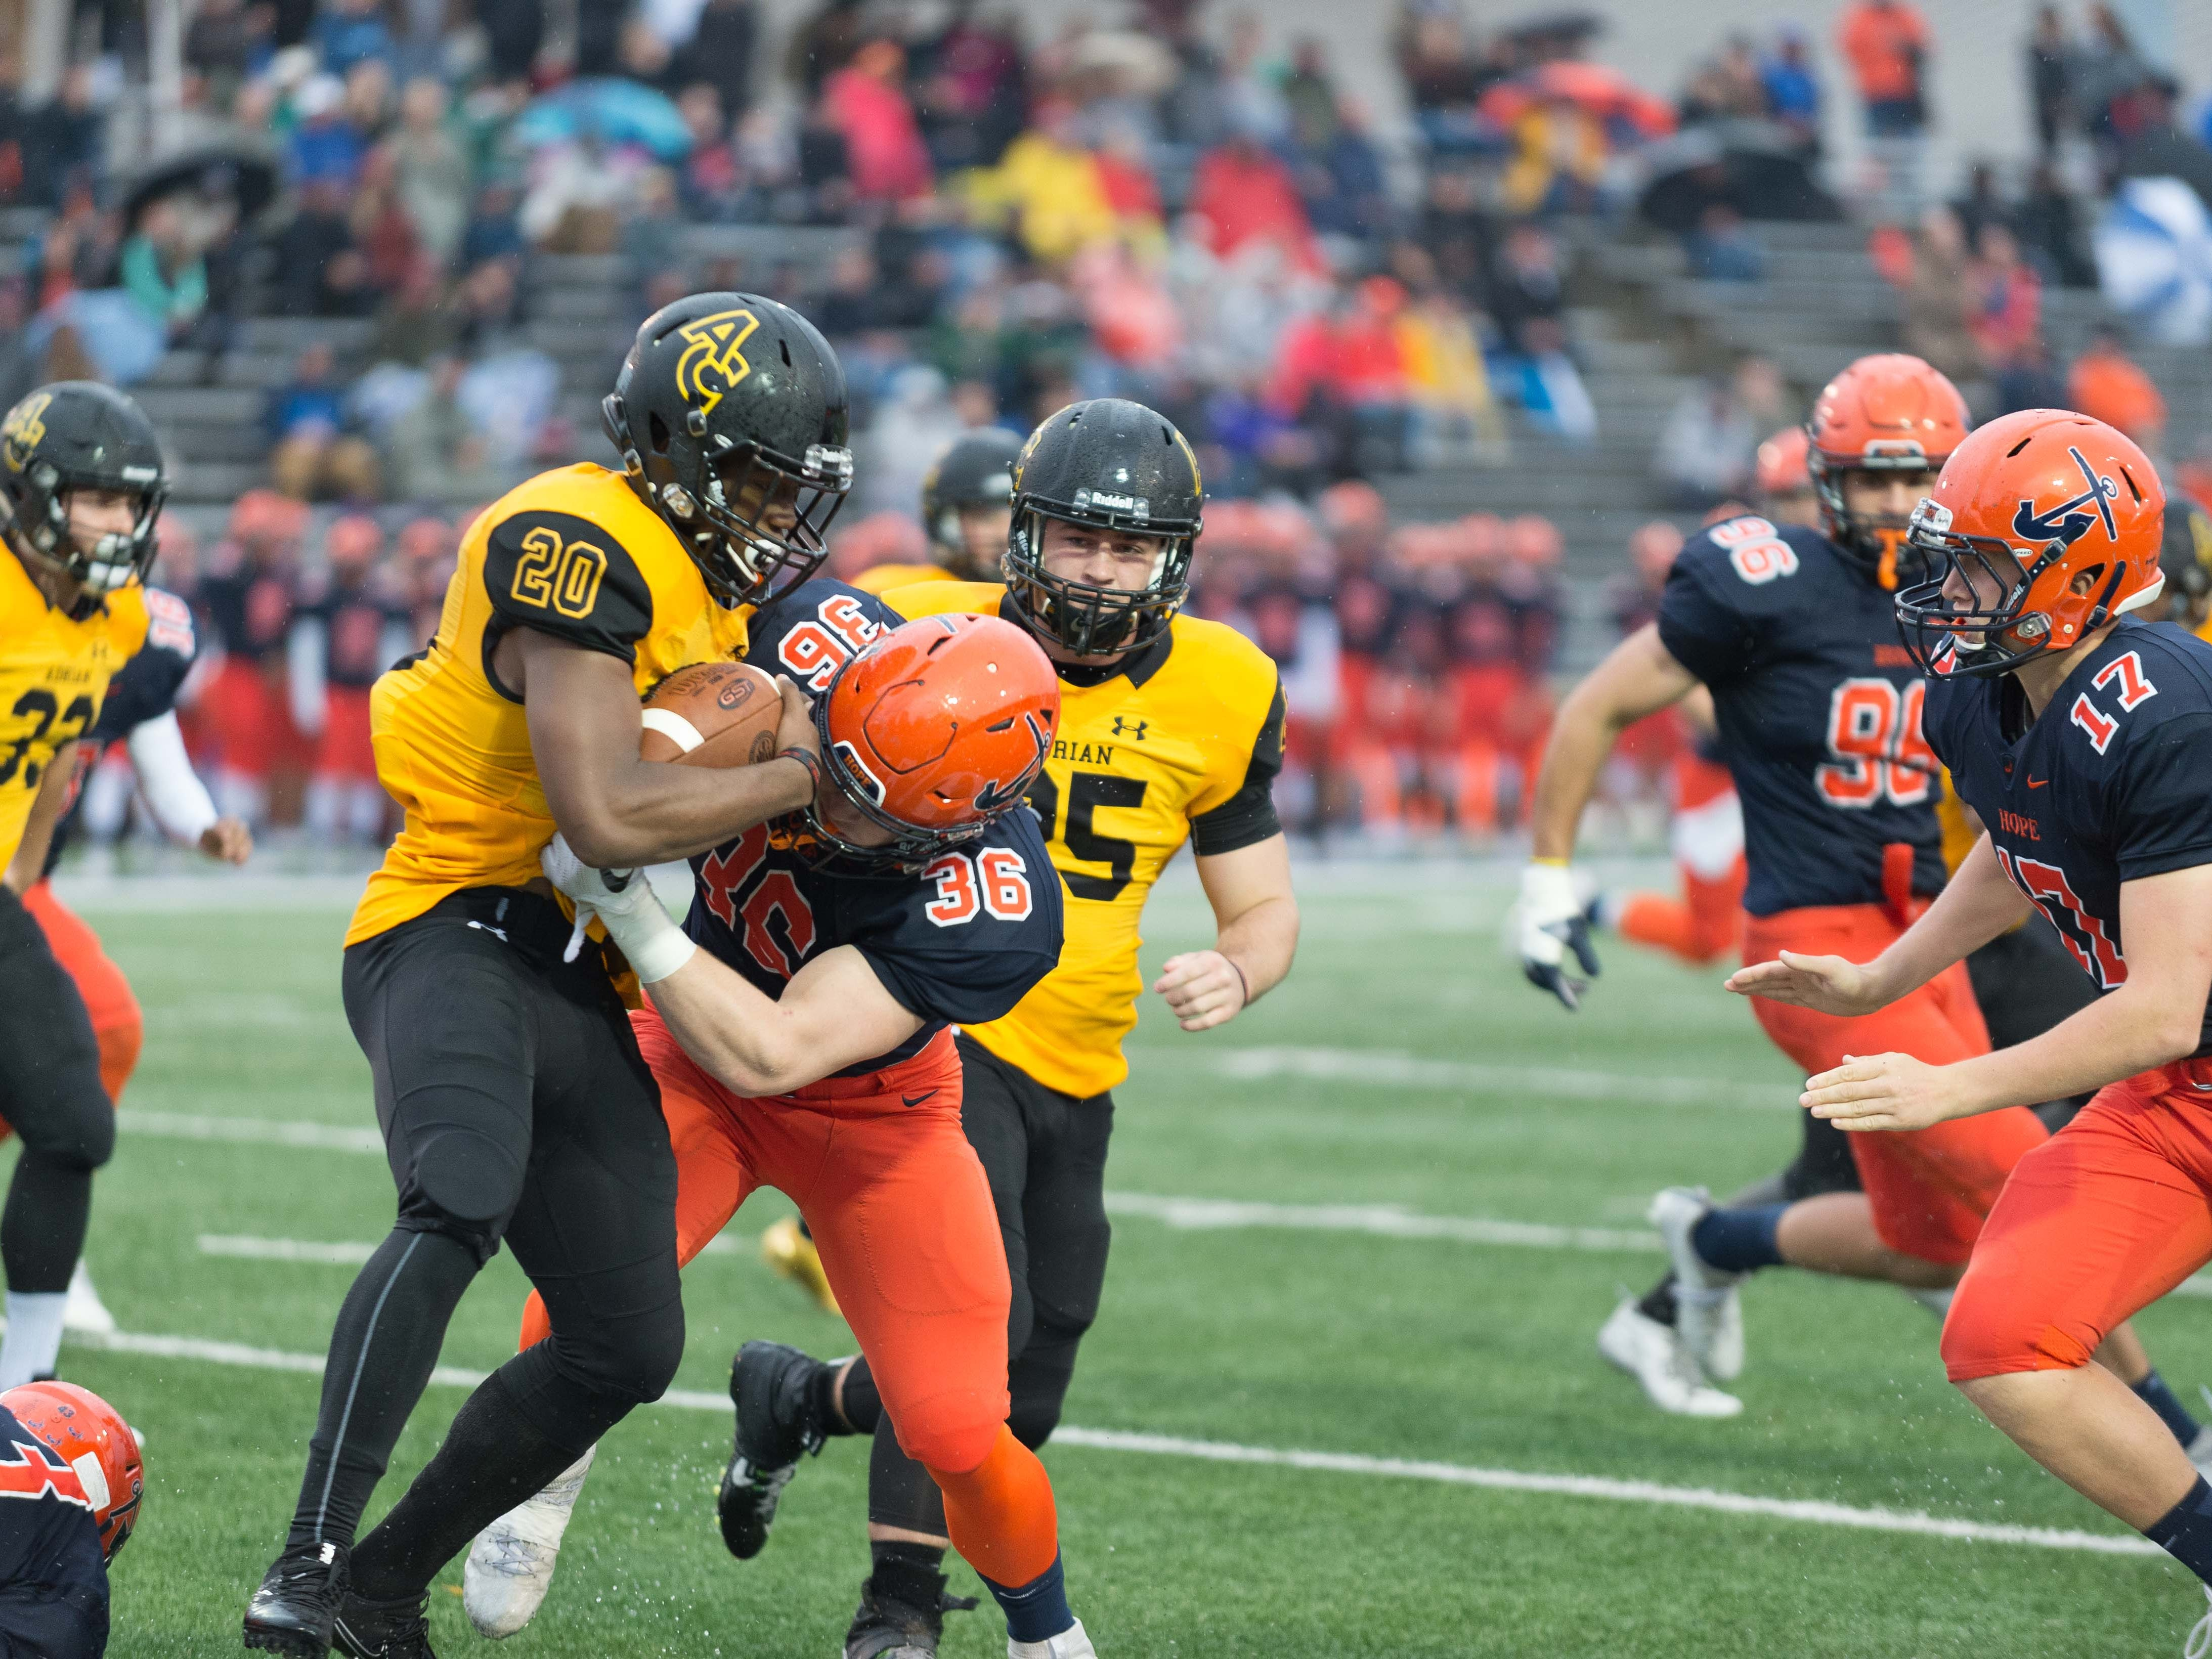 19. Hope at Adrian. When: Nov. 10. Where: Adrian. The buzz: This is the only Division III game to make the list, but make no mistake, this game is a classic year-in and year-out.